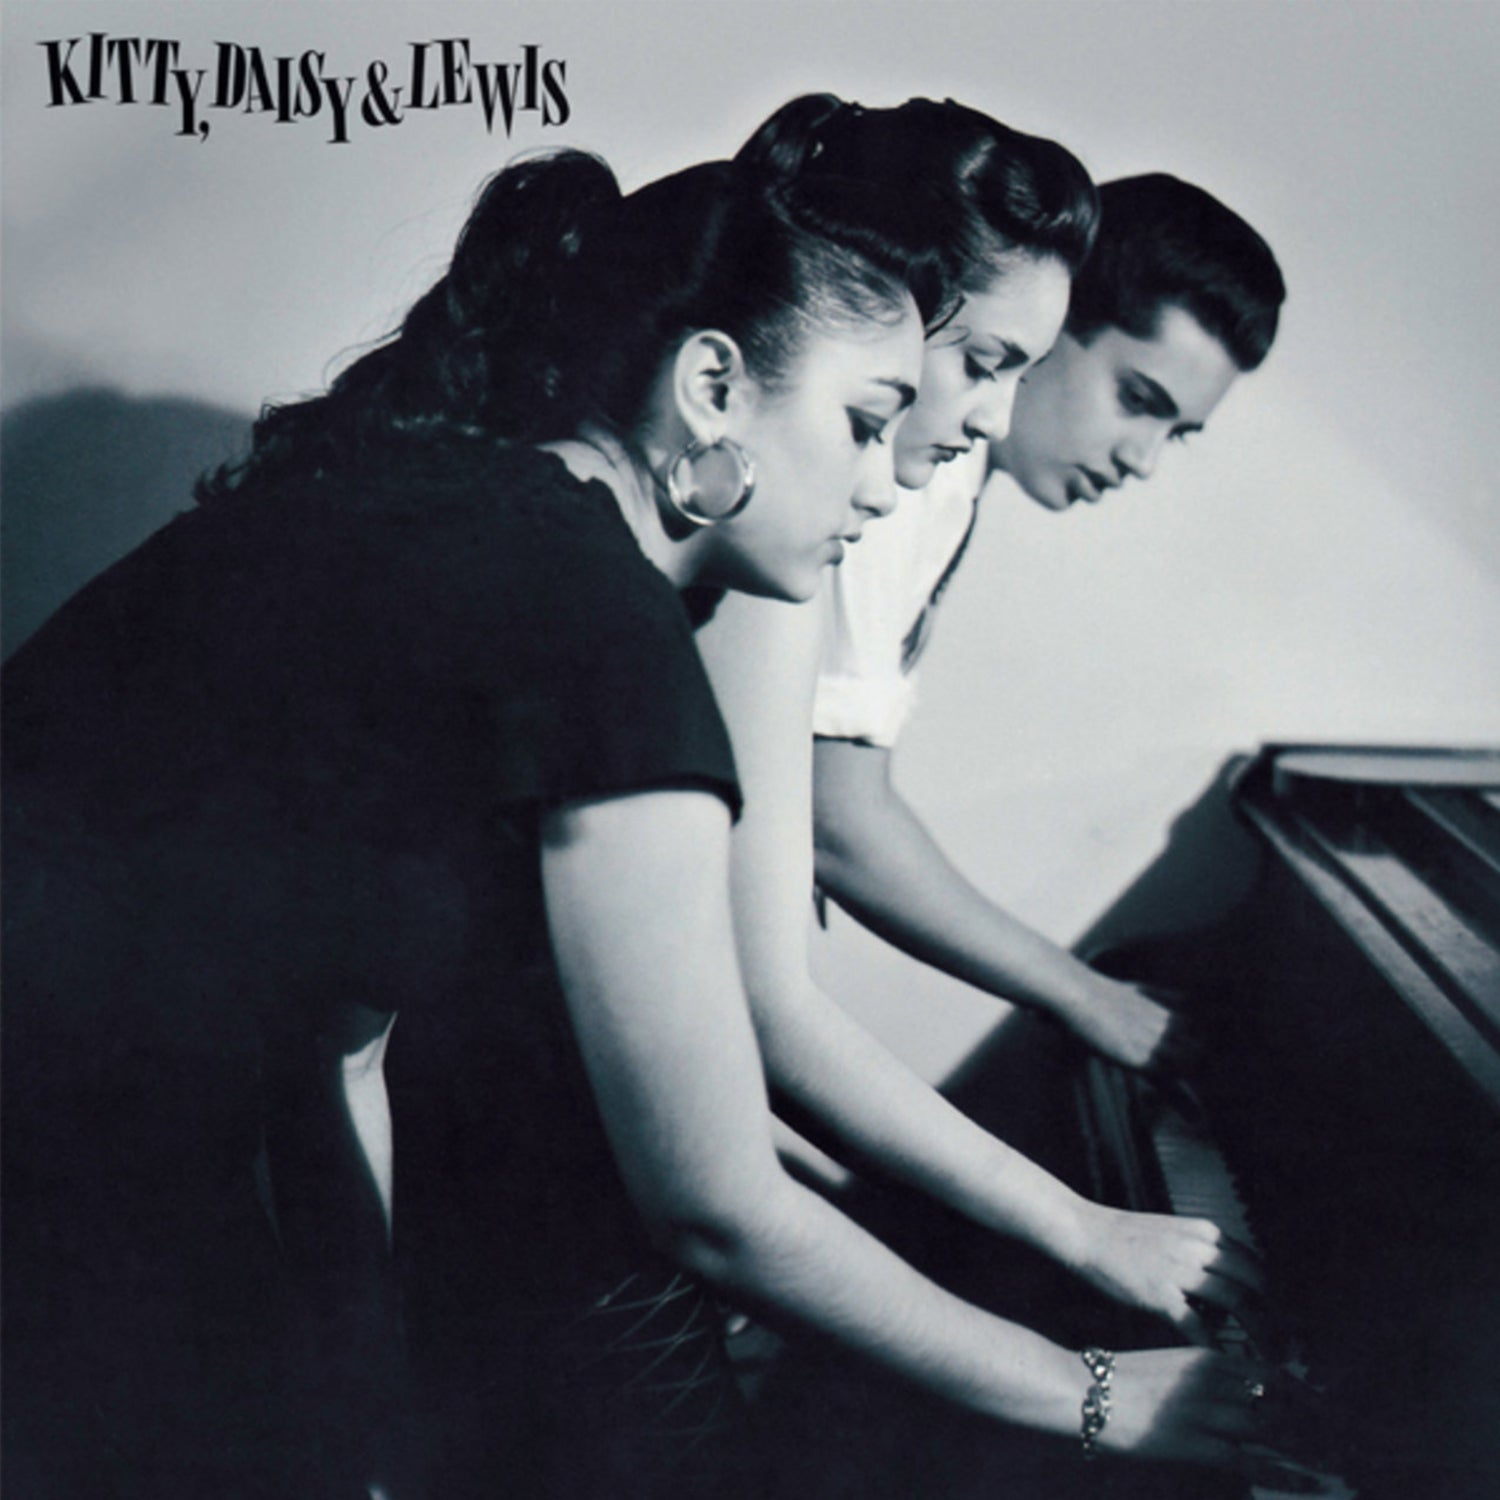 Image of Kitty Daisy & Lewis - Kitty Daisy & Lewis